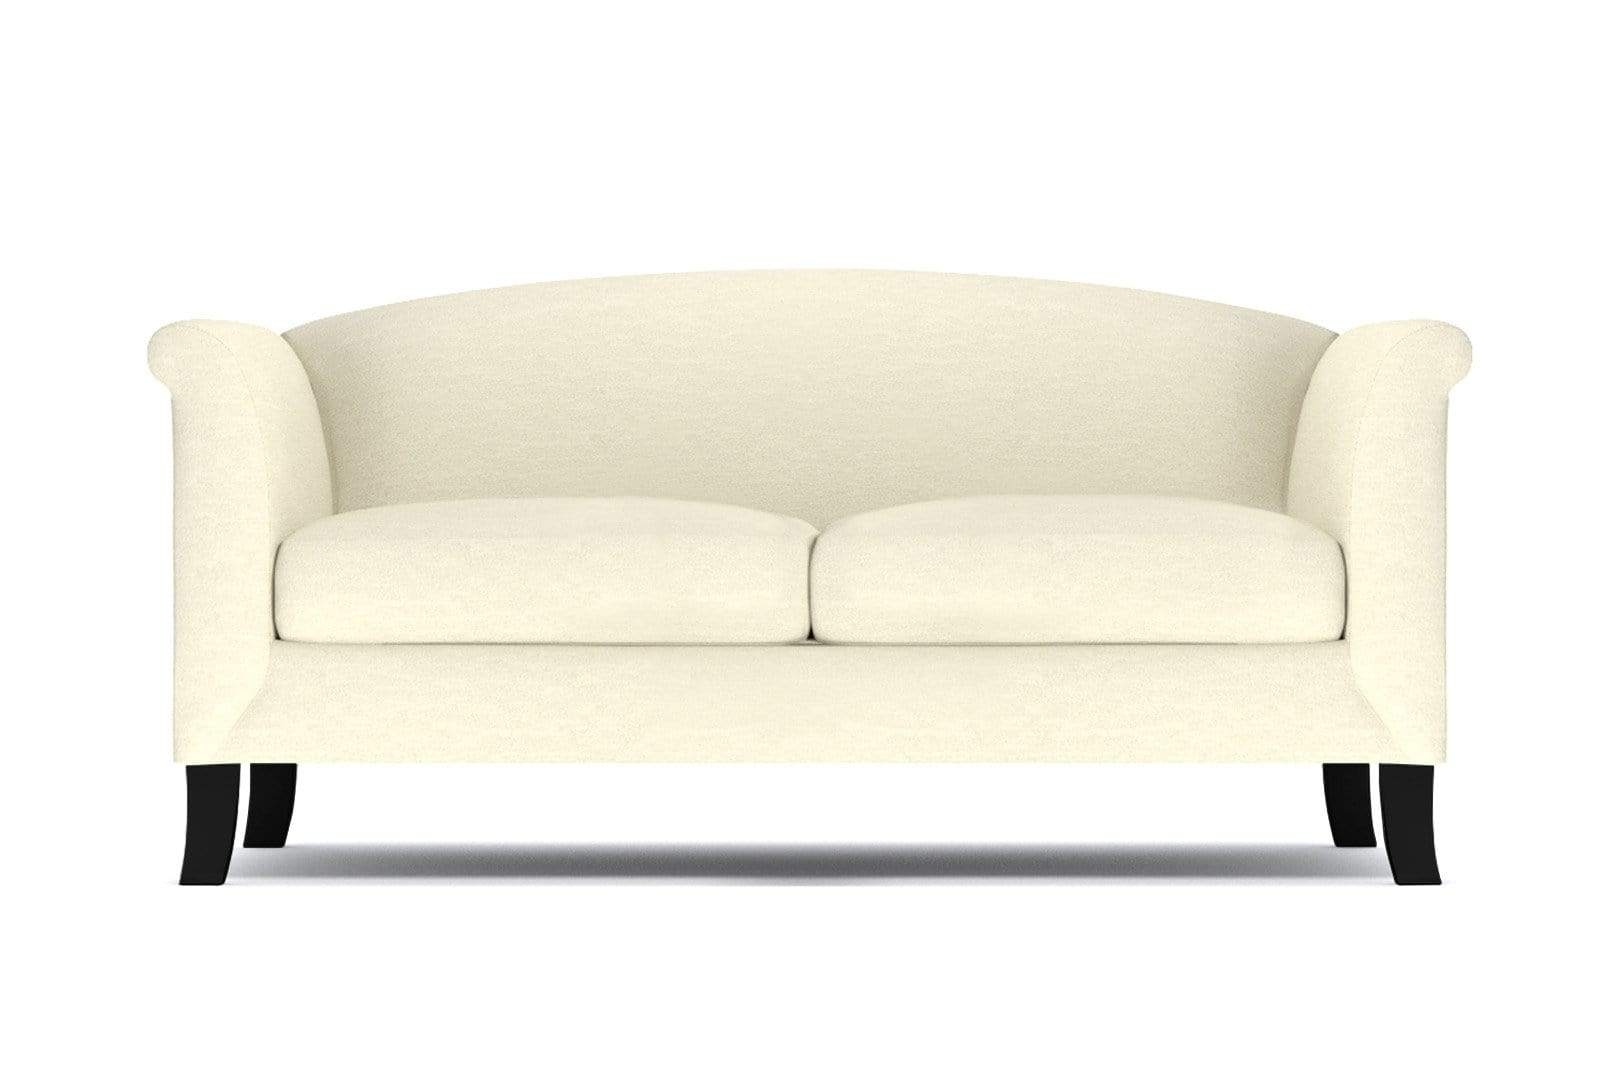 Albright_Apartment_Size_Sofa__Cream___Small_Space_Modern_Couch_Made_in_the_USA__Sold_by_Apt2B